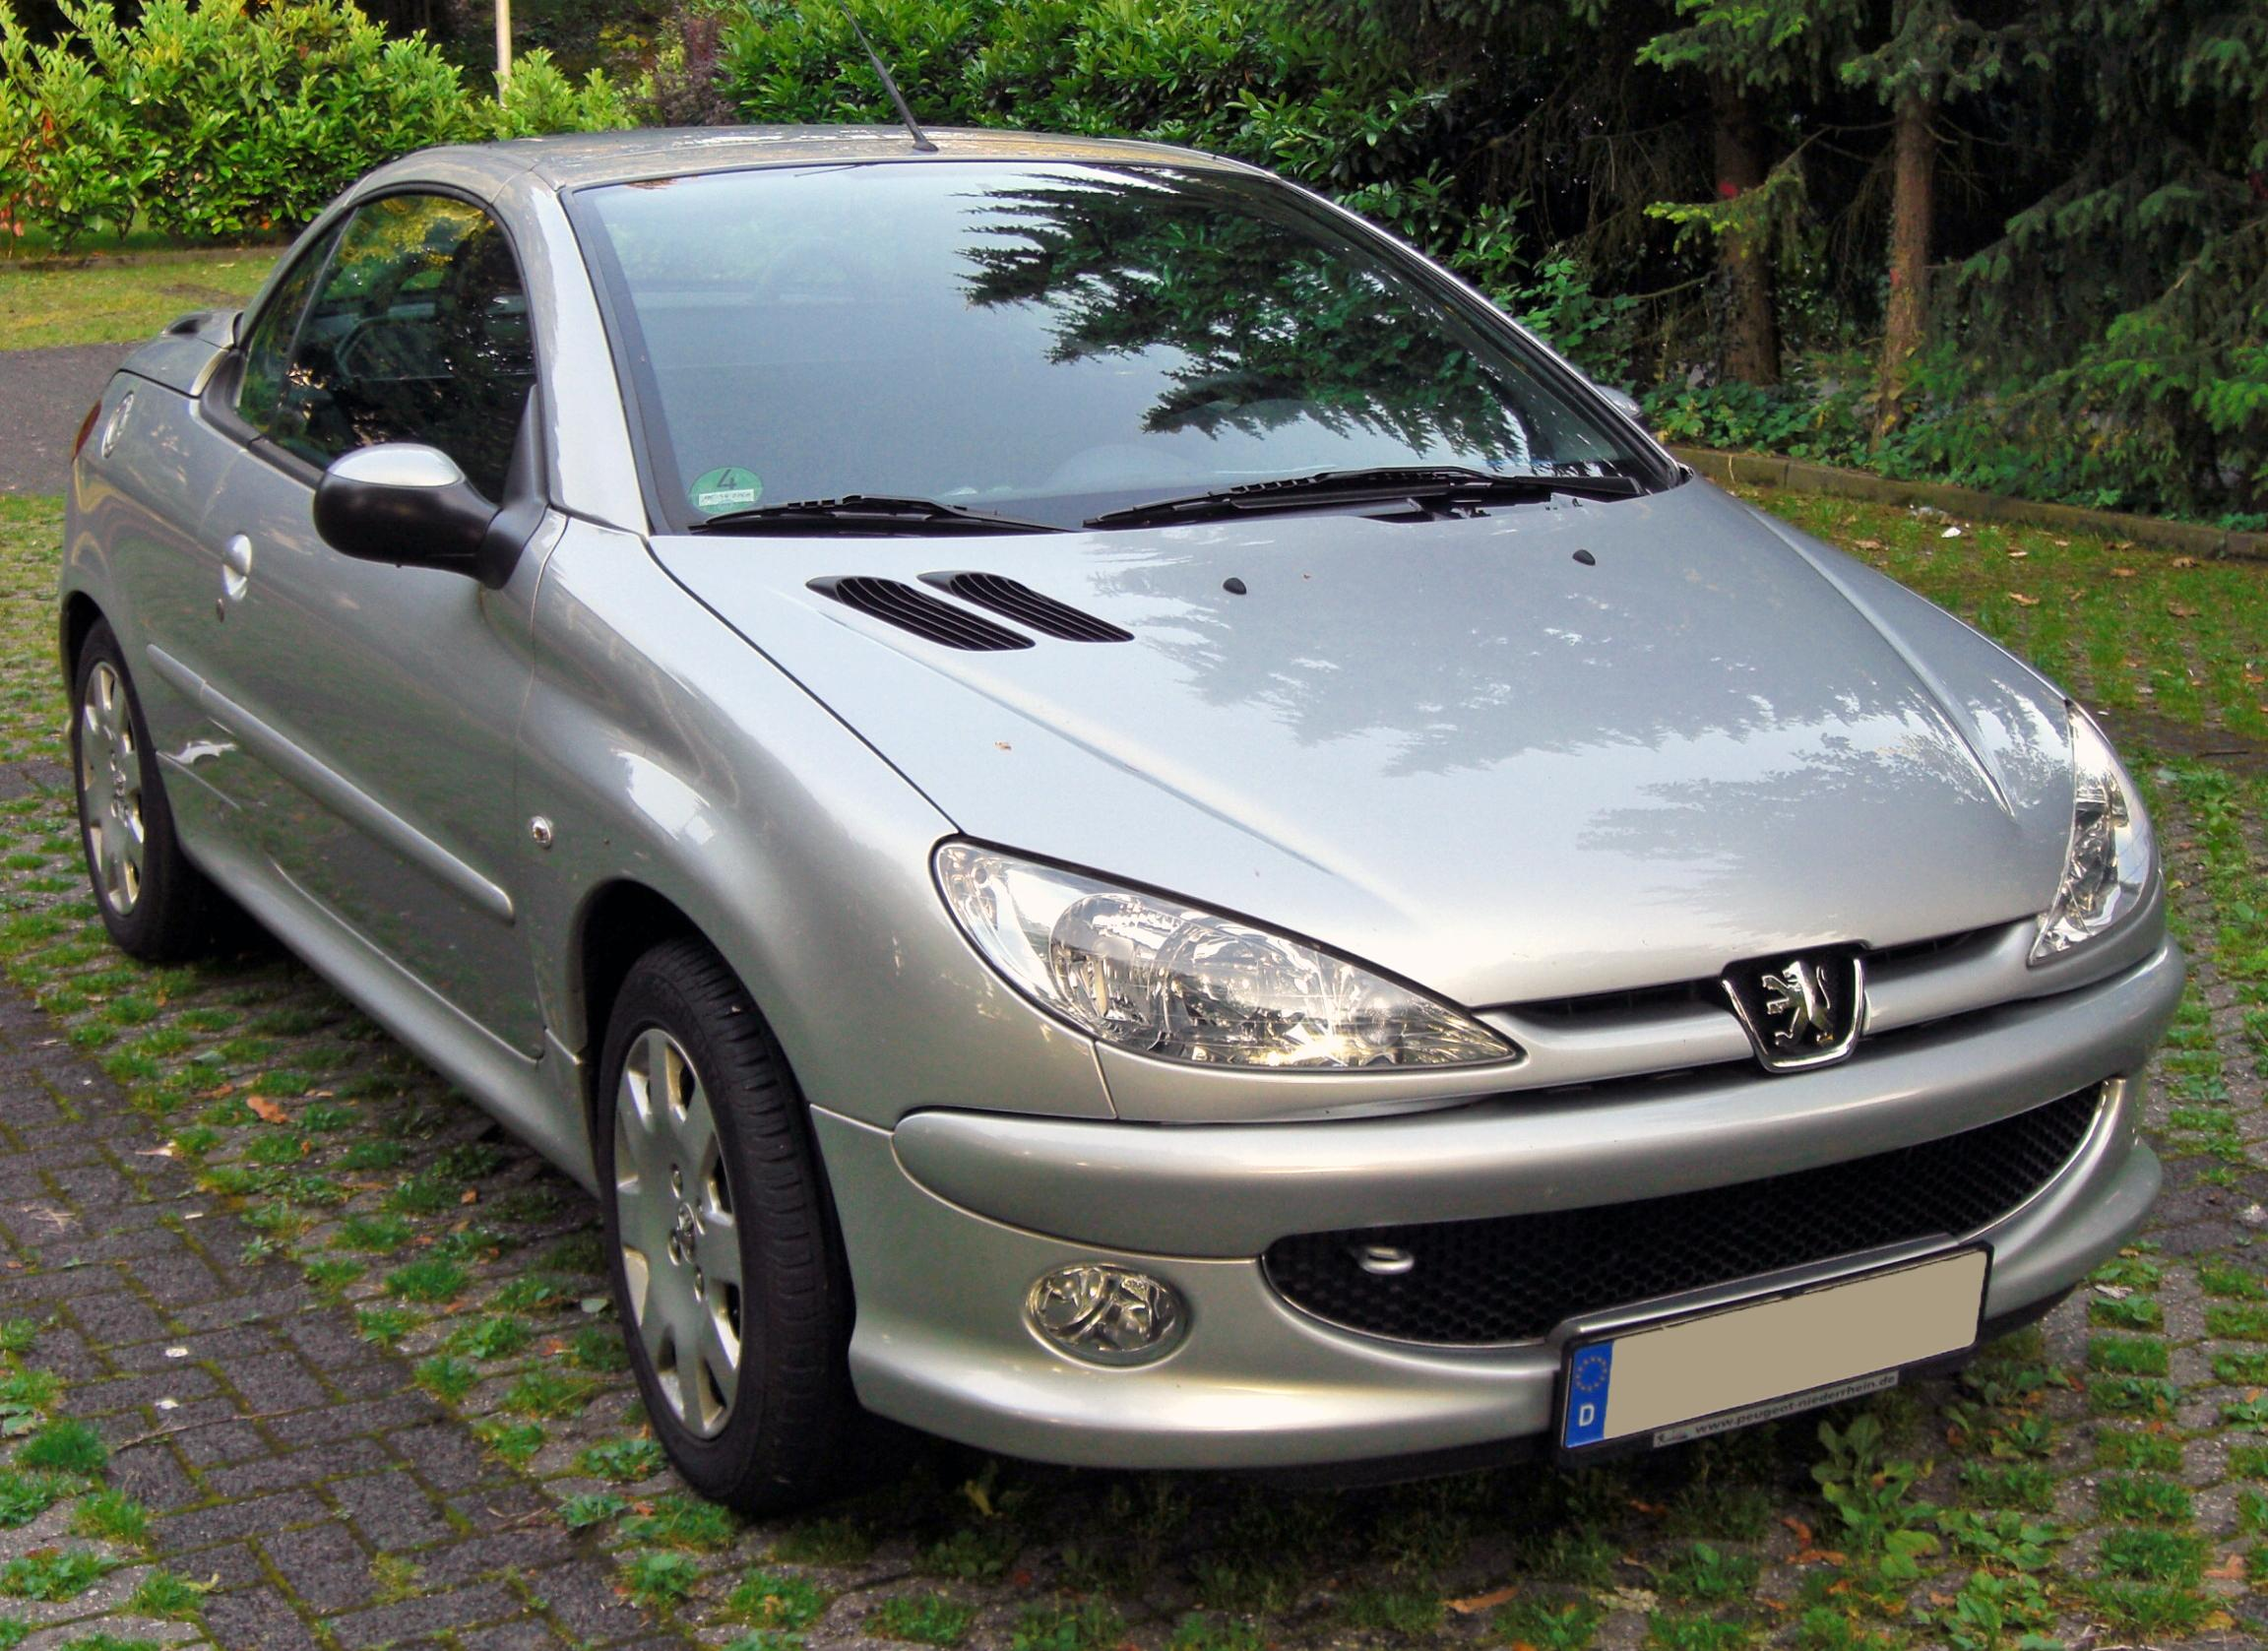 file peugeot 206 cc 20090612 front jpg wikipedia. Black Bedroom Furniture Sets. Home Design Ideas